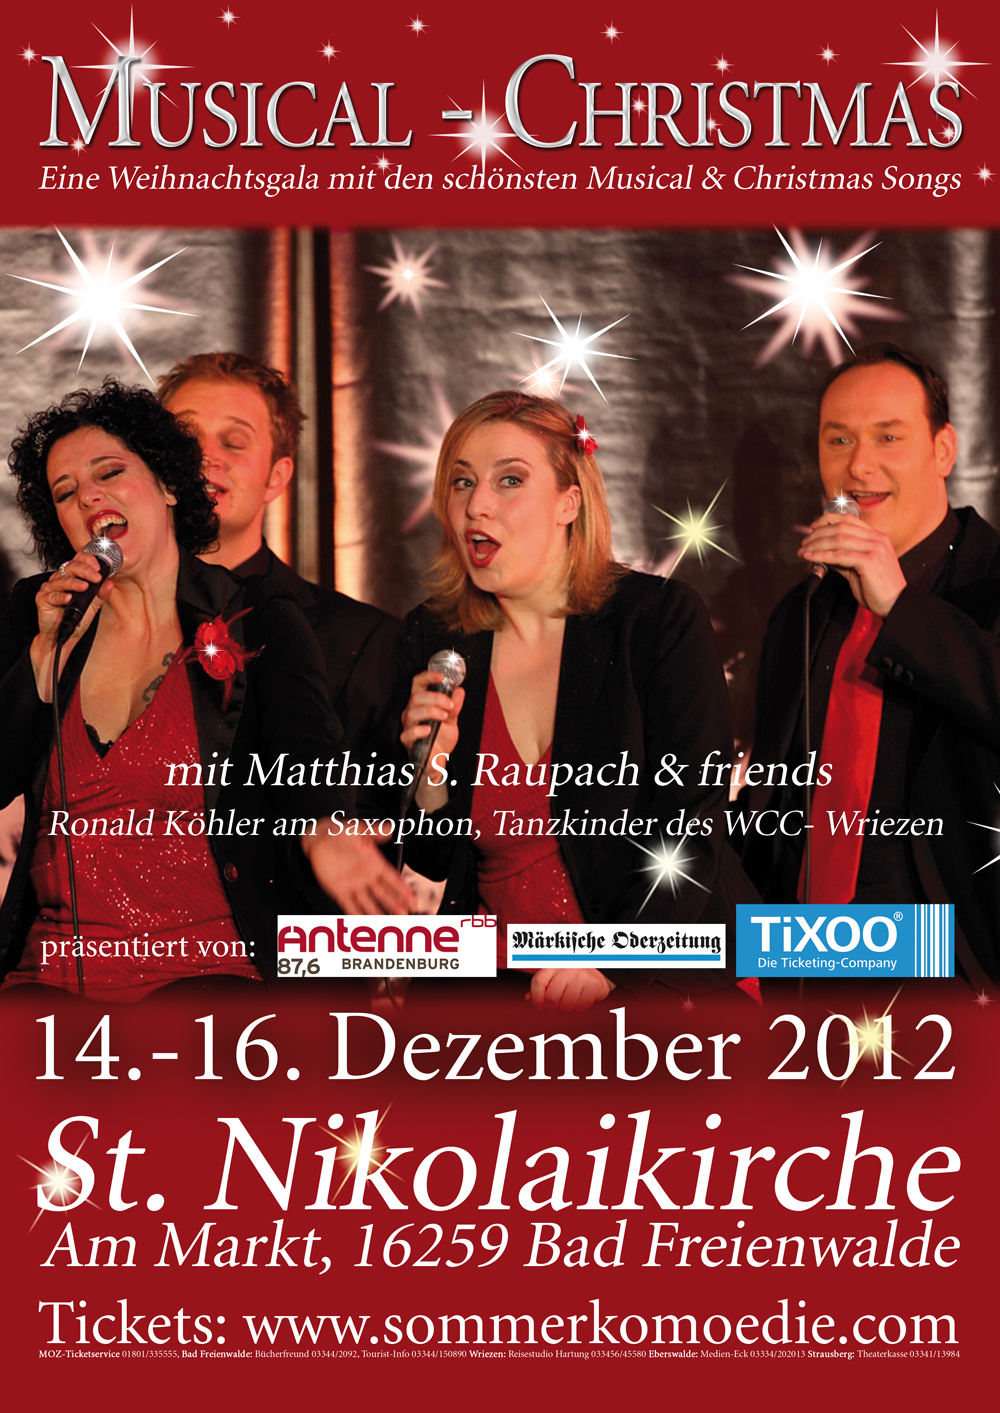 Musical-Christmas 2012 in Bad Freienwalde